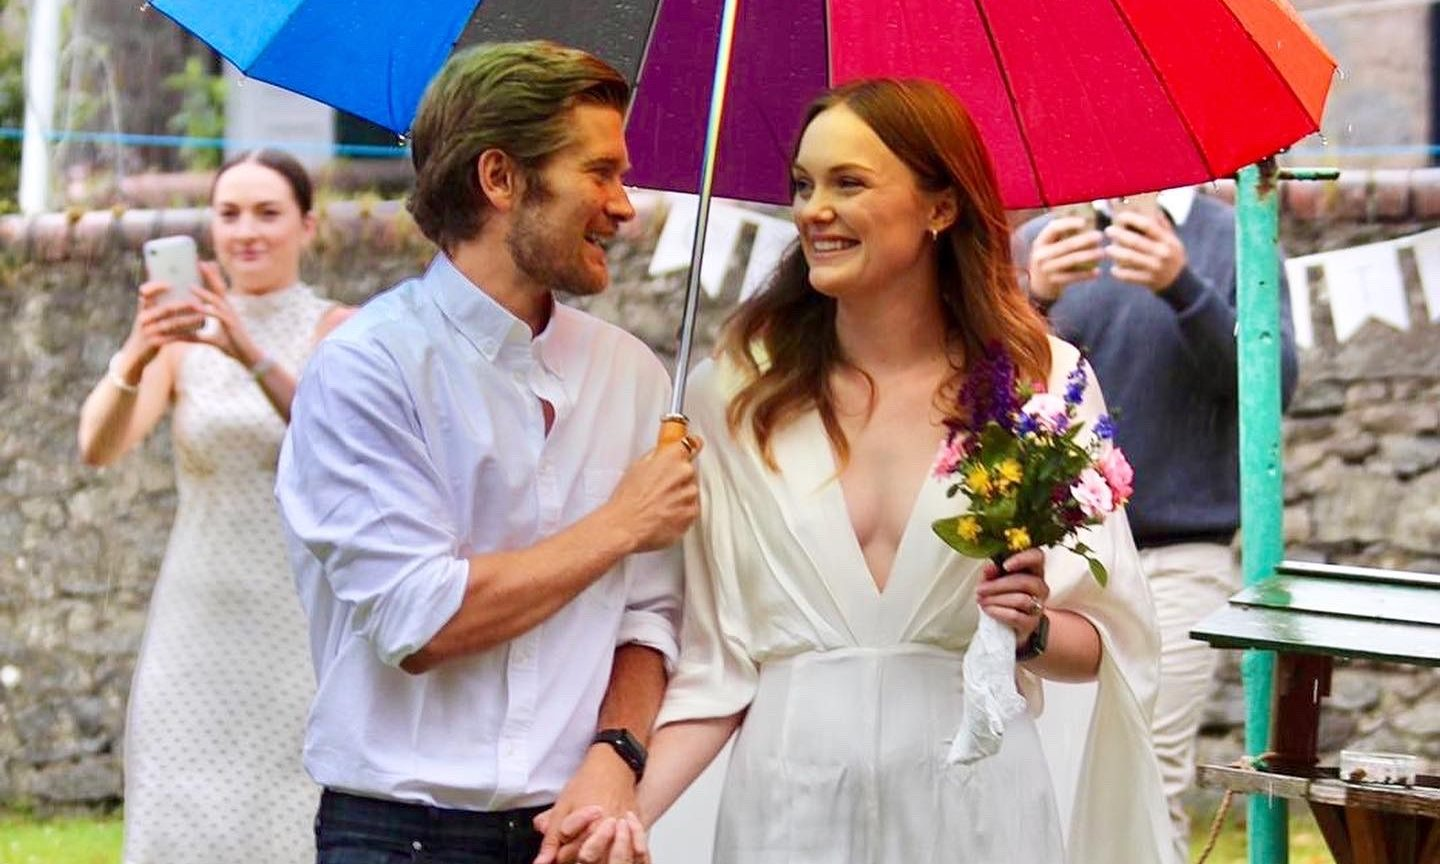 Iona Macgowan, 26, and Connan Cooper, 28, tied the knot in their back garden.